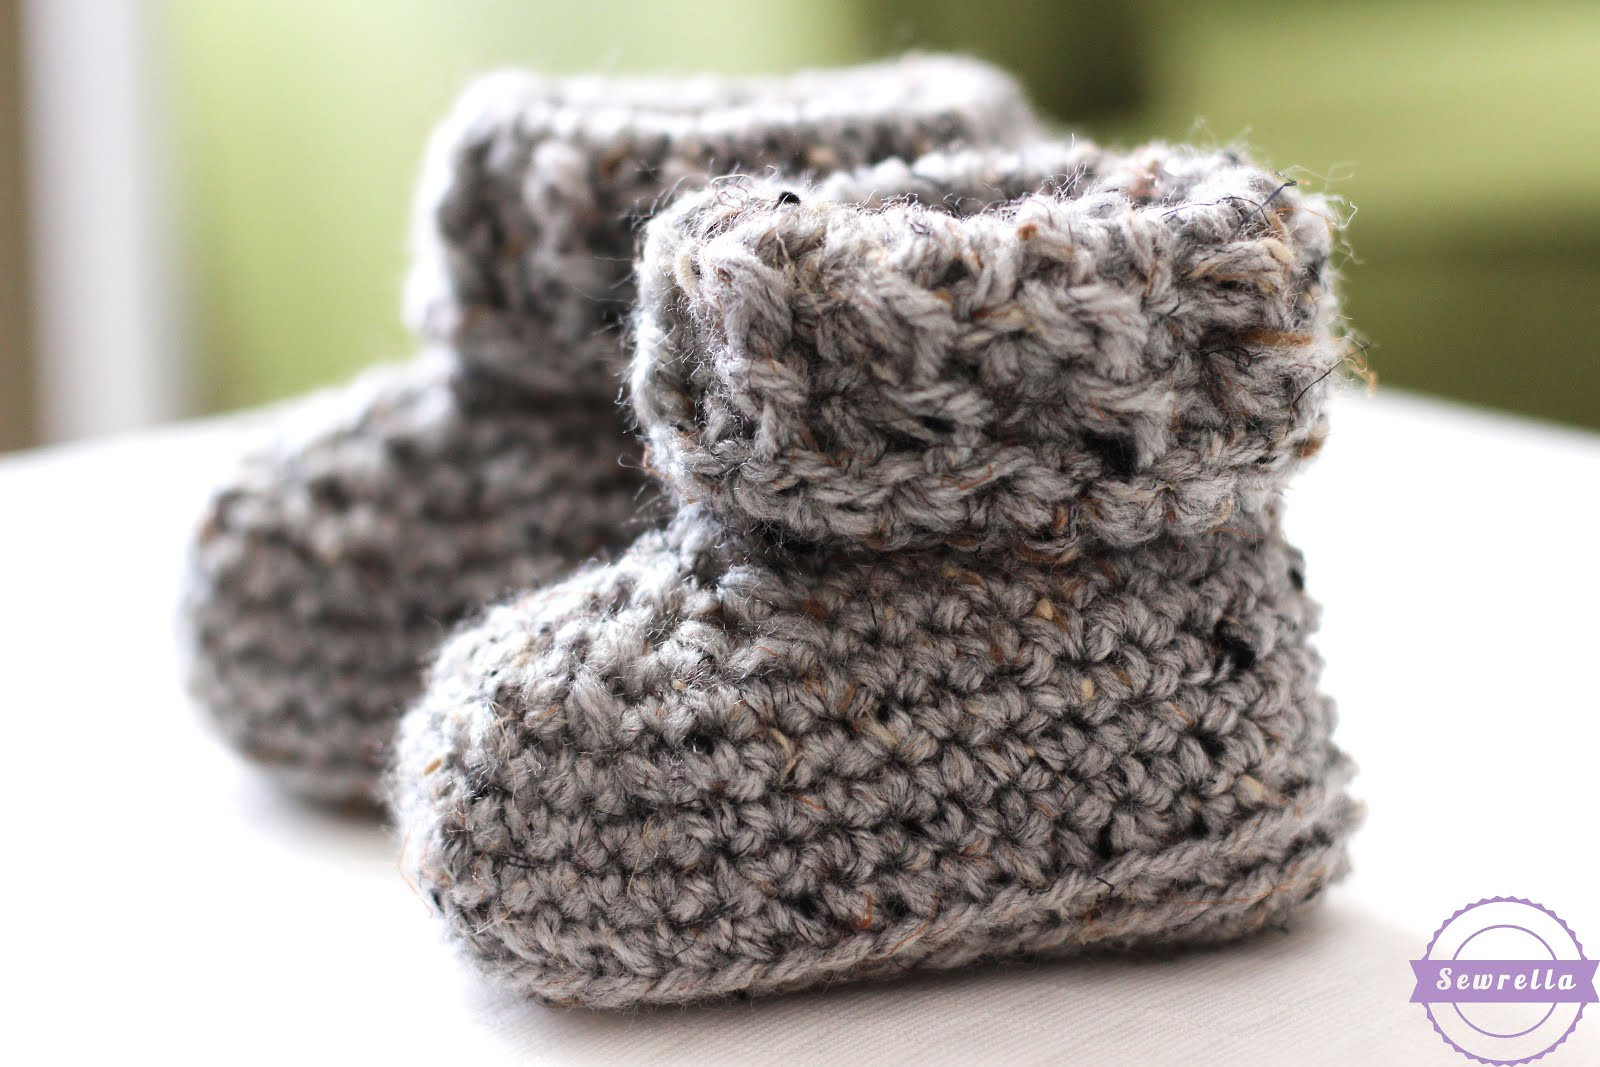 Newborn Crochet Patterns Lovely the Parker Crochet Baby Booties Sewrella Of Incredible 41 Ideas Newborn Crochet Patterns